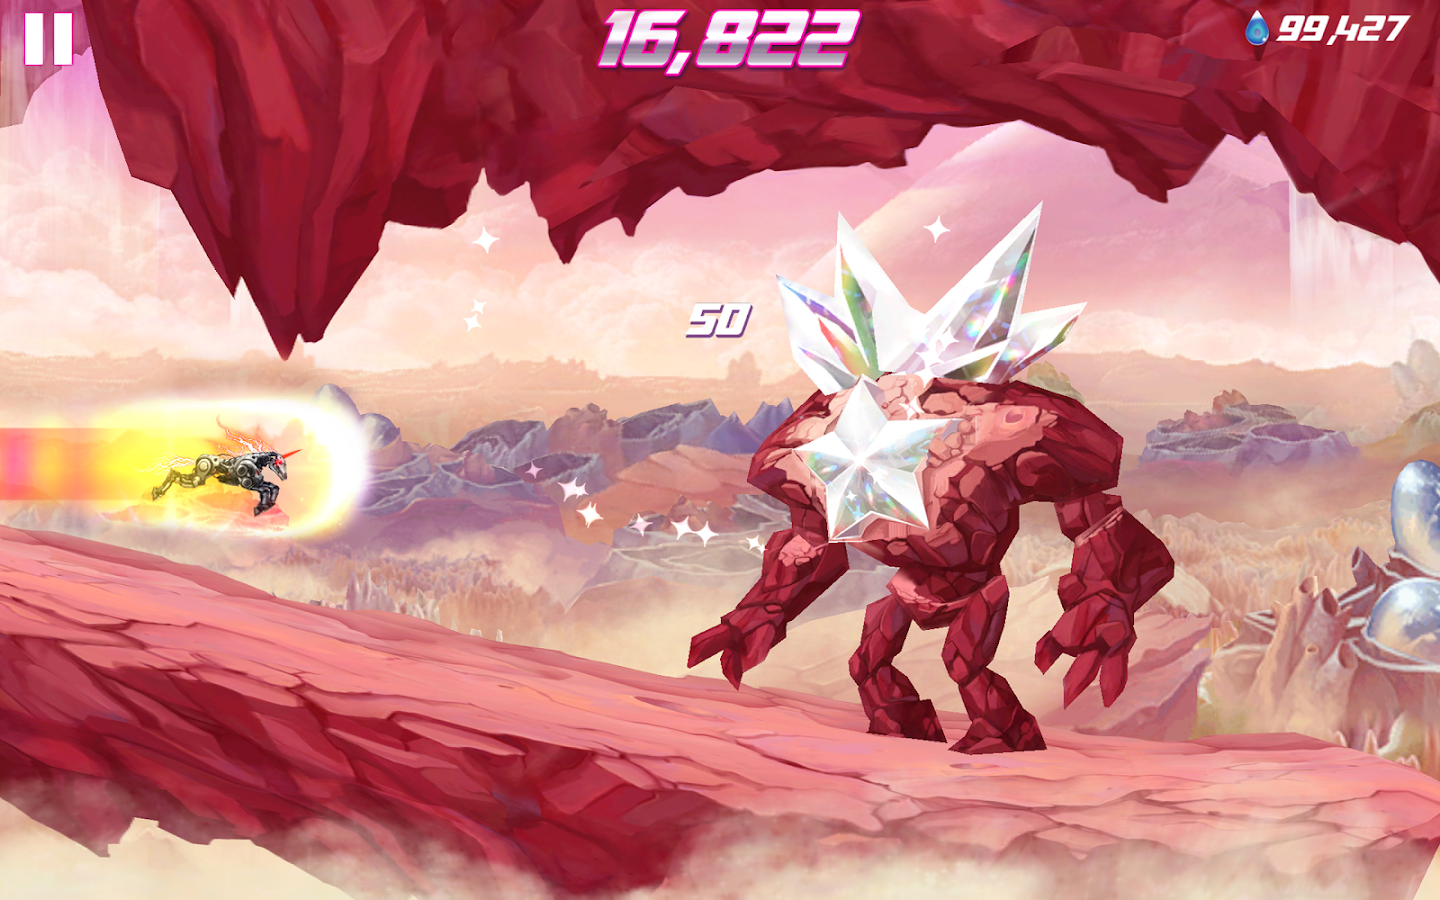 Robot Unicorn Attack 2 Screenshot 10